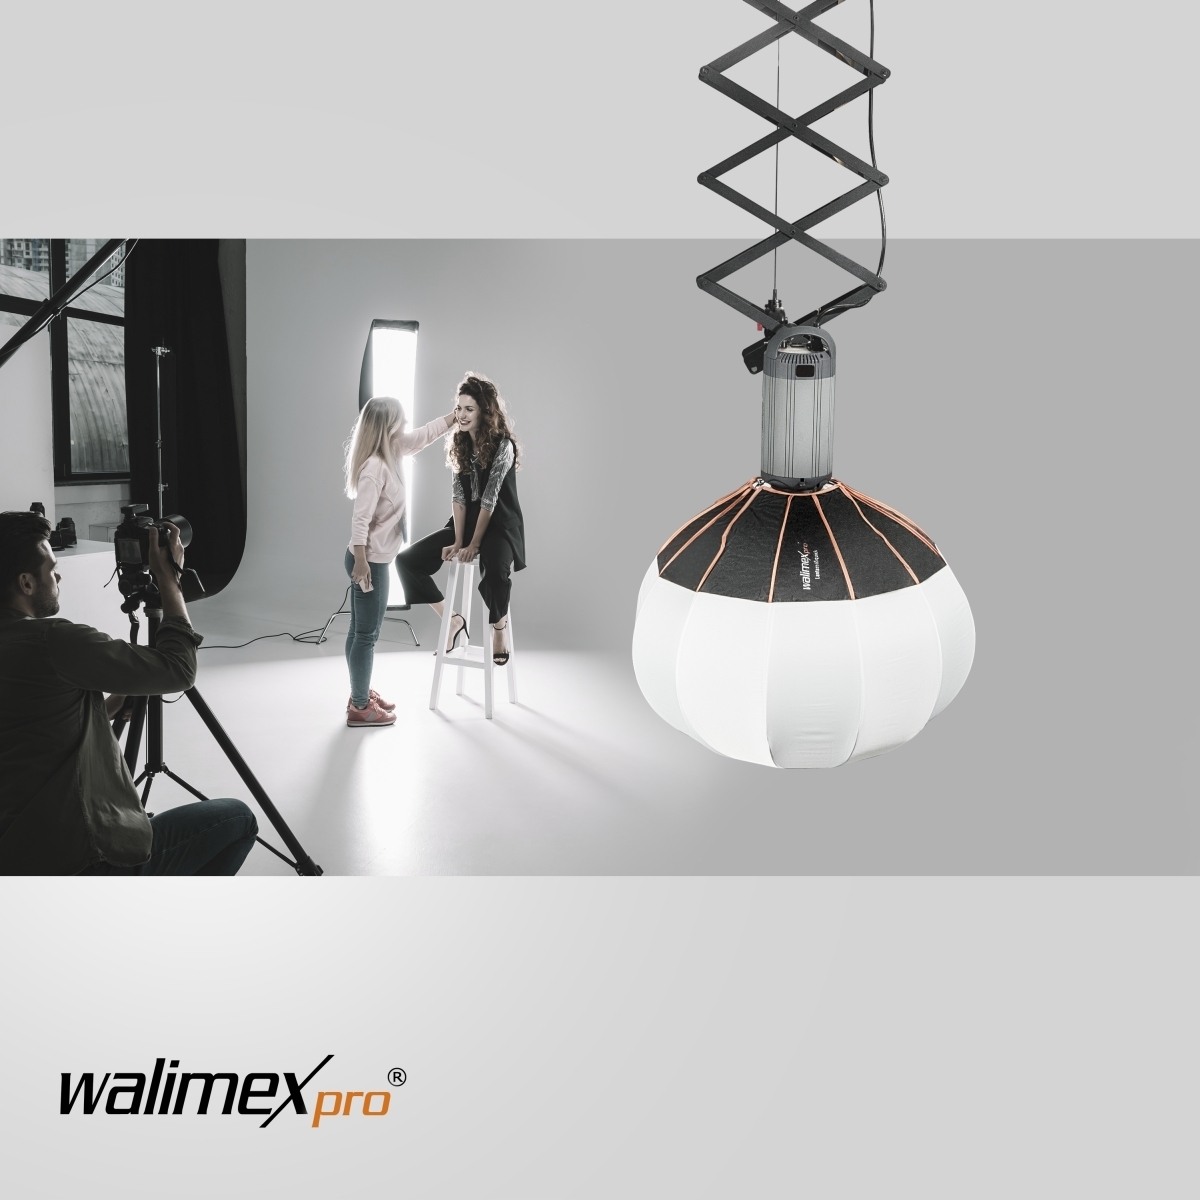 Walimex pro 360° Ambient Light Softbox 80cm mit Softboxadapter Multiblitz P